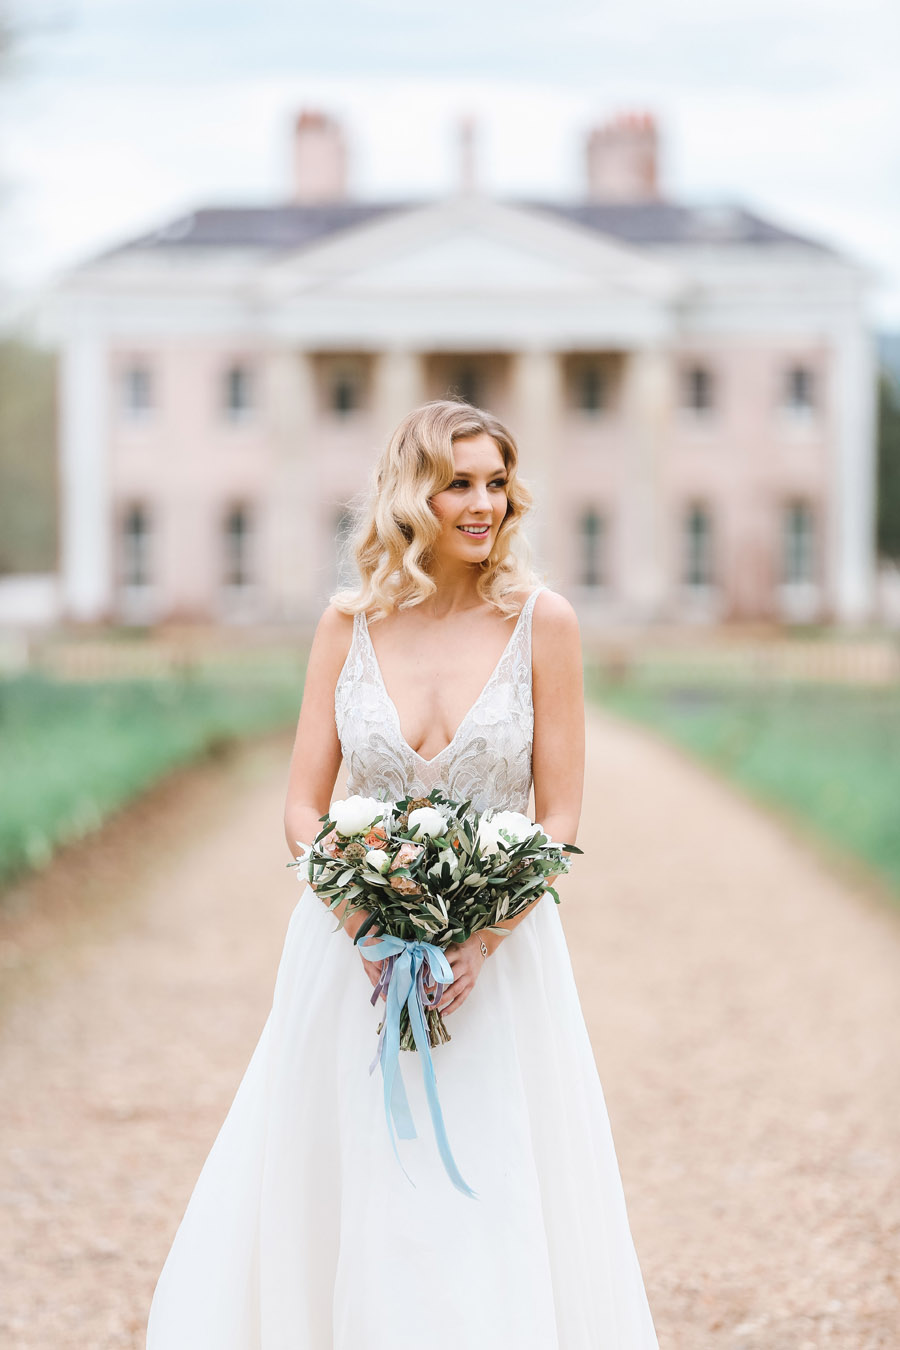 Romantic wedding ideas from Hale Park, photo by Charlotte Wise Photography (52)